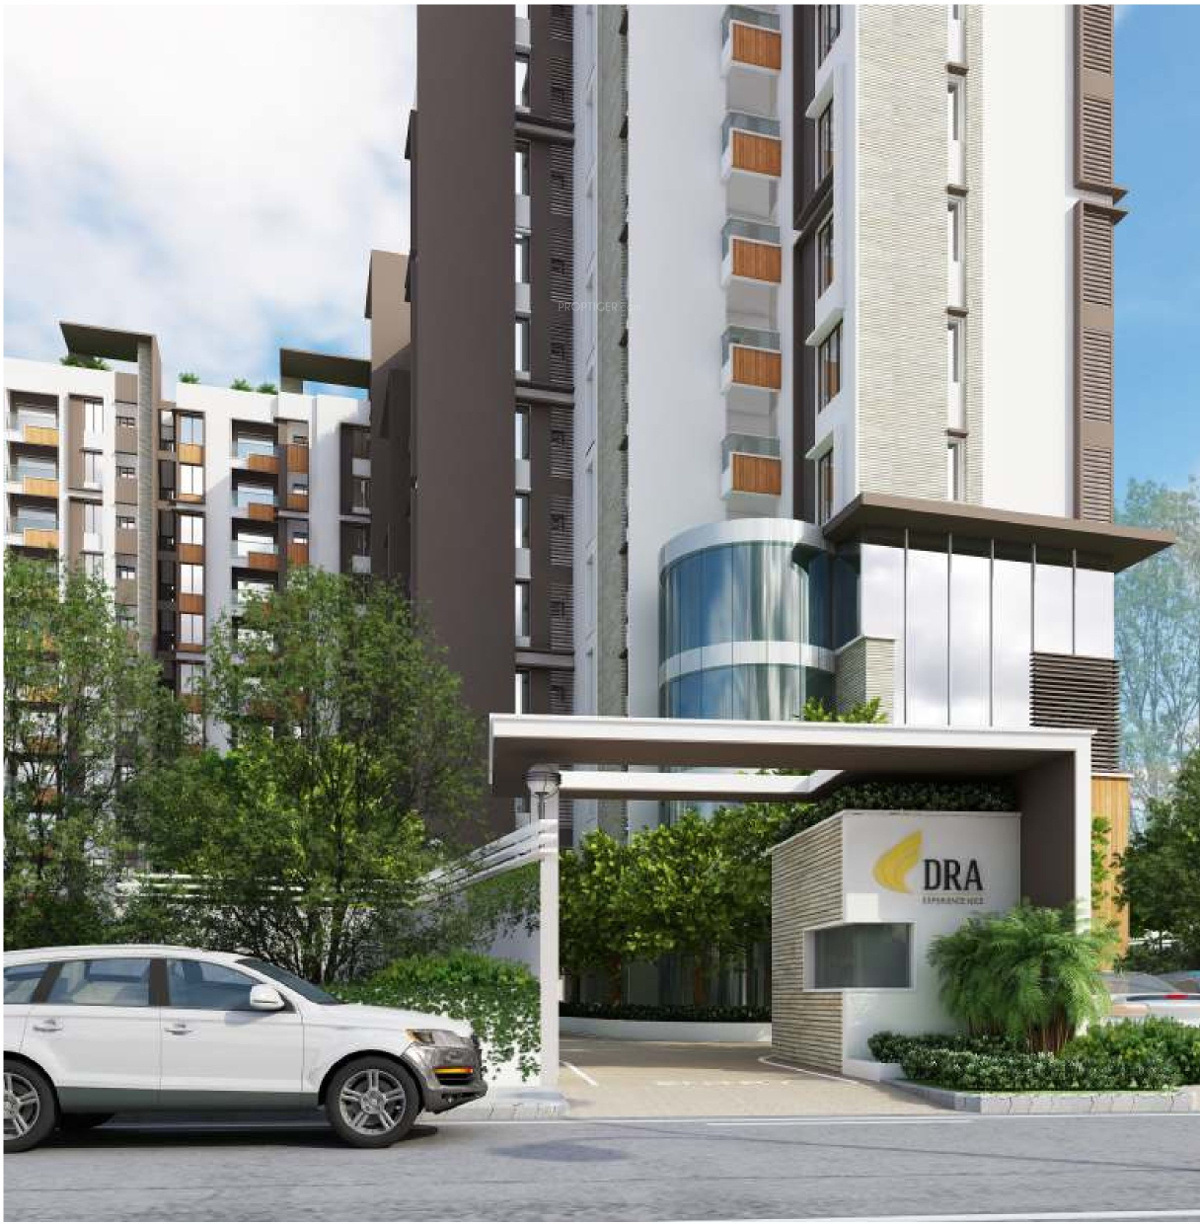 1068 sq ft 2 bhk 2t apartment for sale in dra 90 degrees